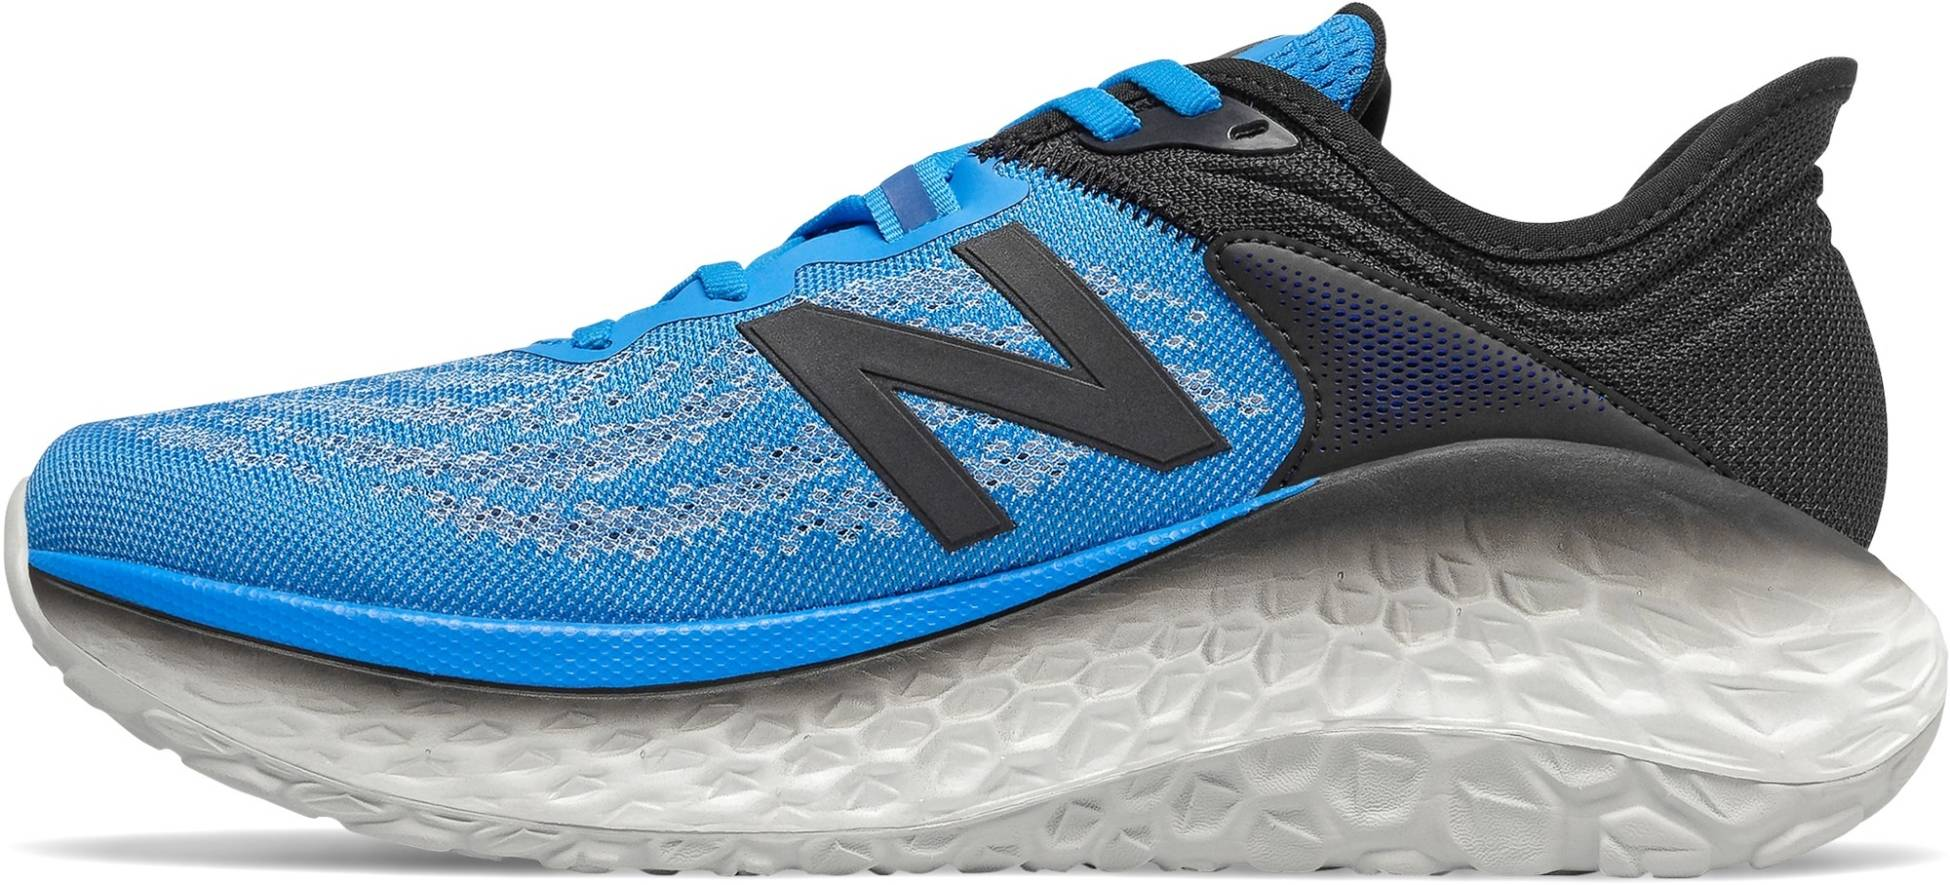 New Balance Low Drop Running Shoes